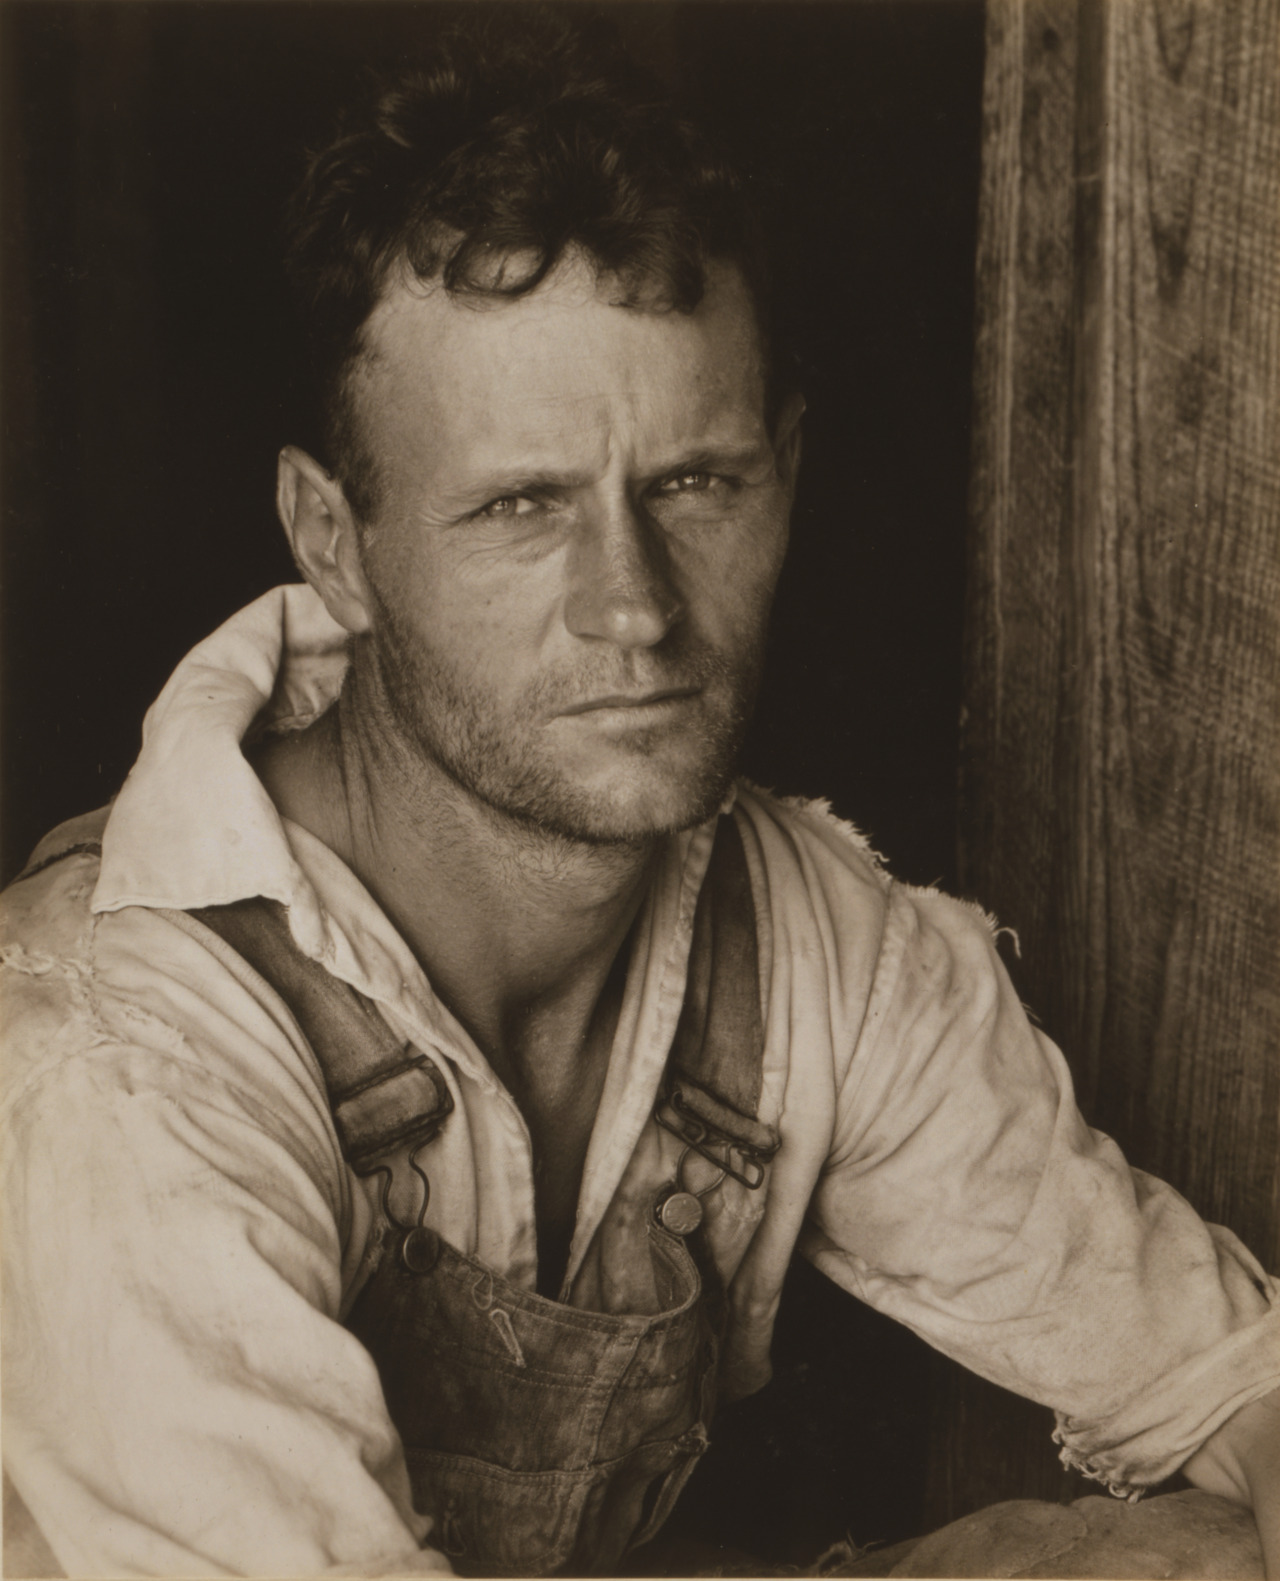 Walker Evans - Floyd Burroughs, c. 1935-1936 Cotton sharecropper, Hale County, Alabama